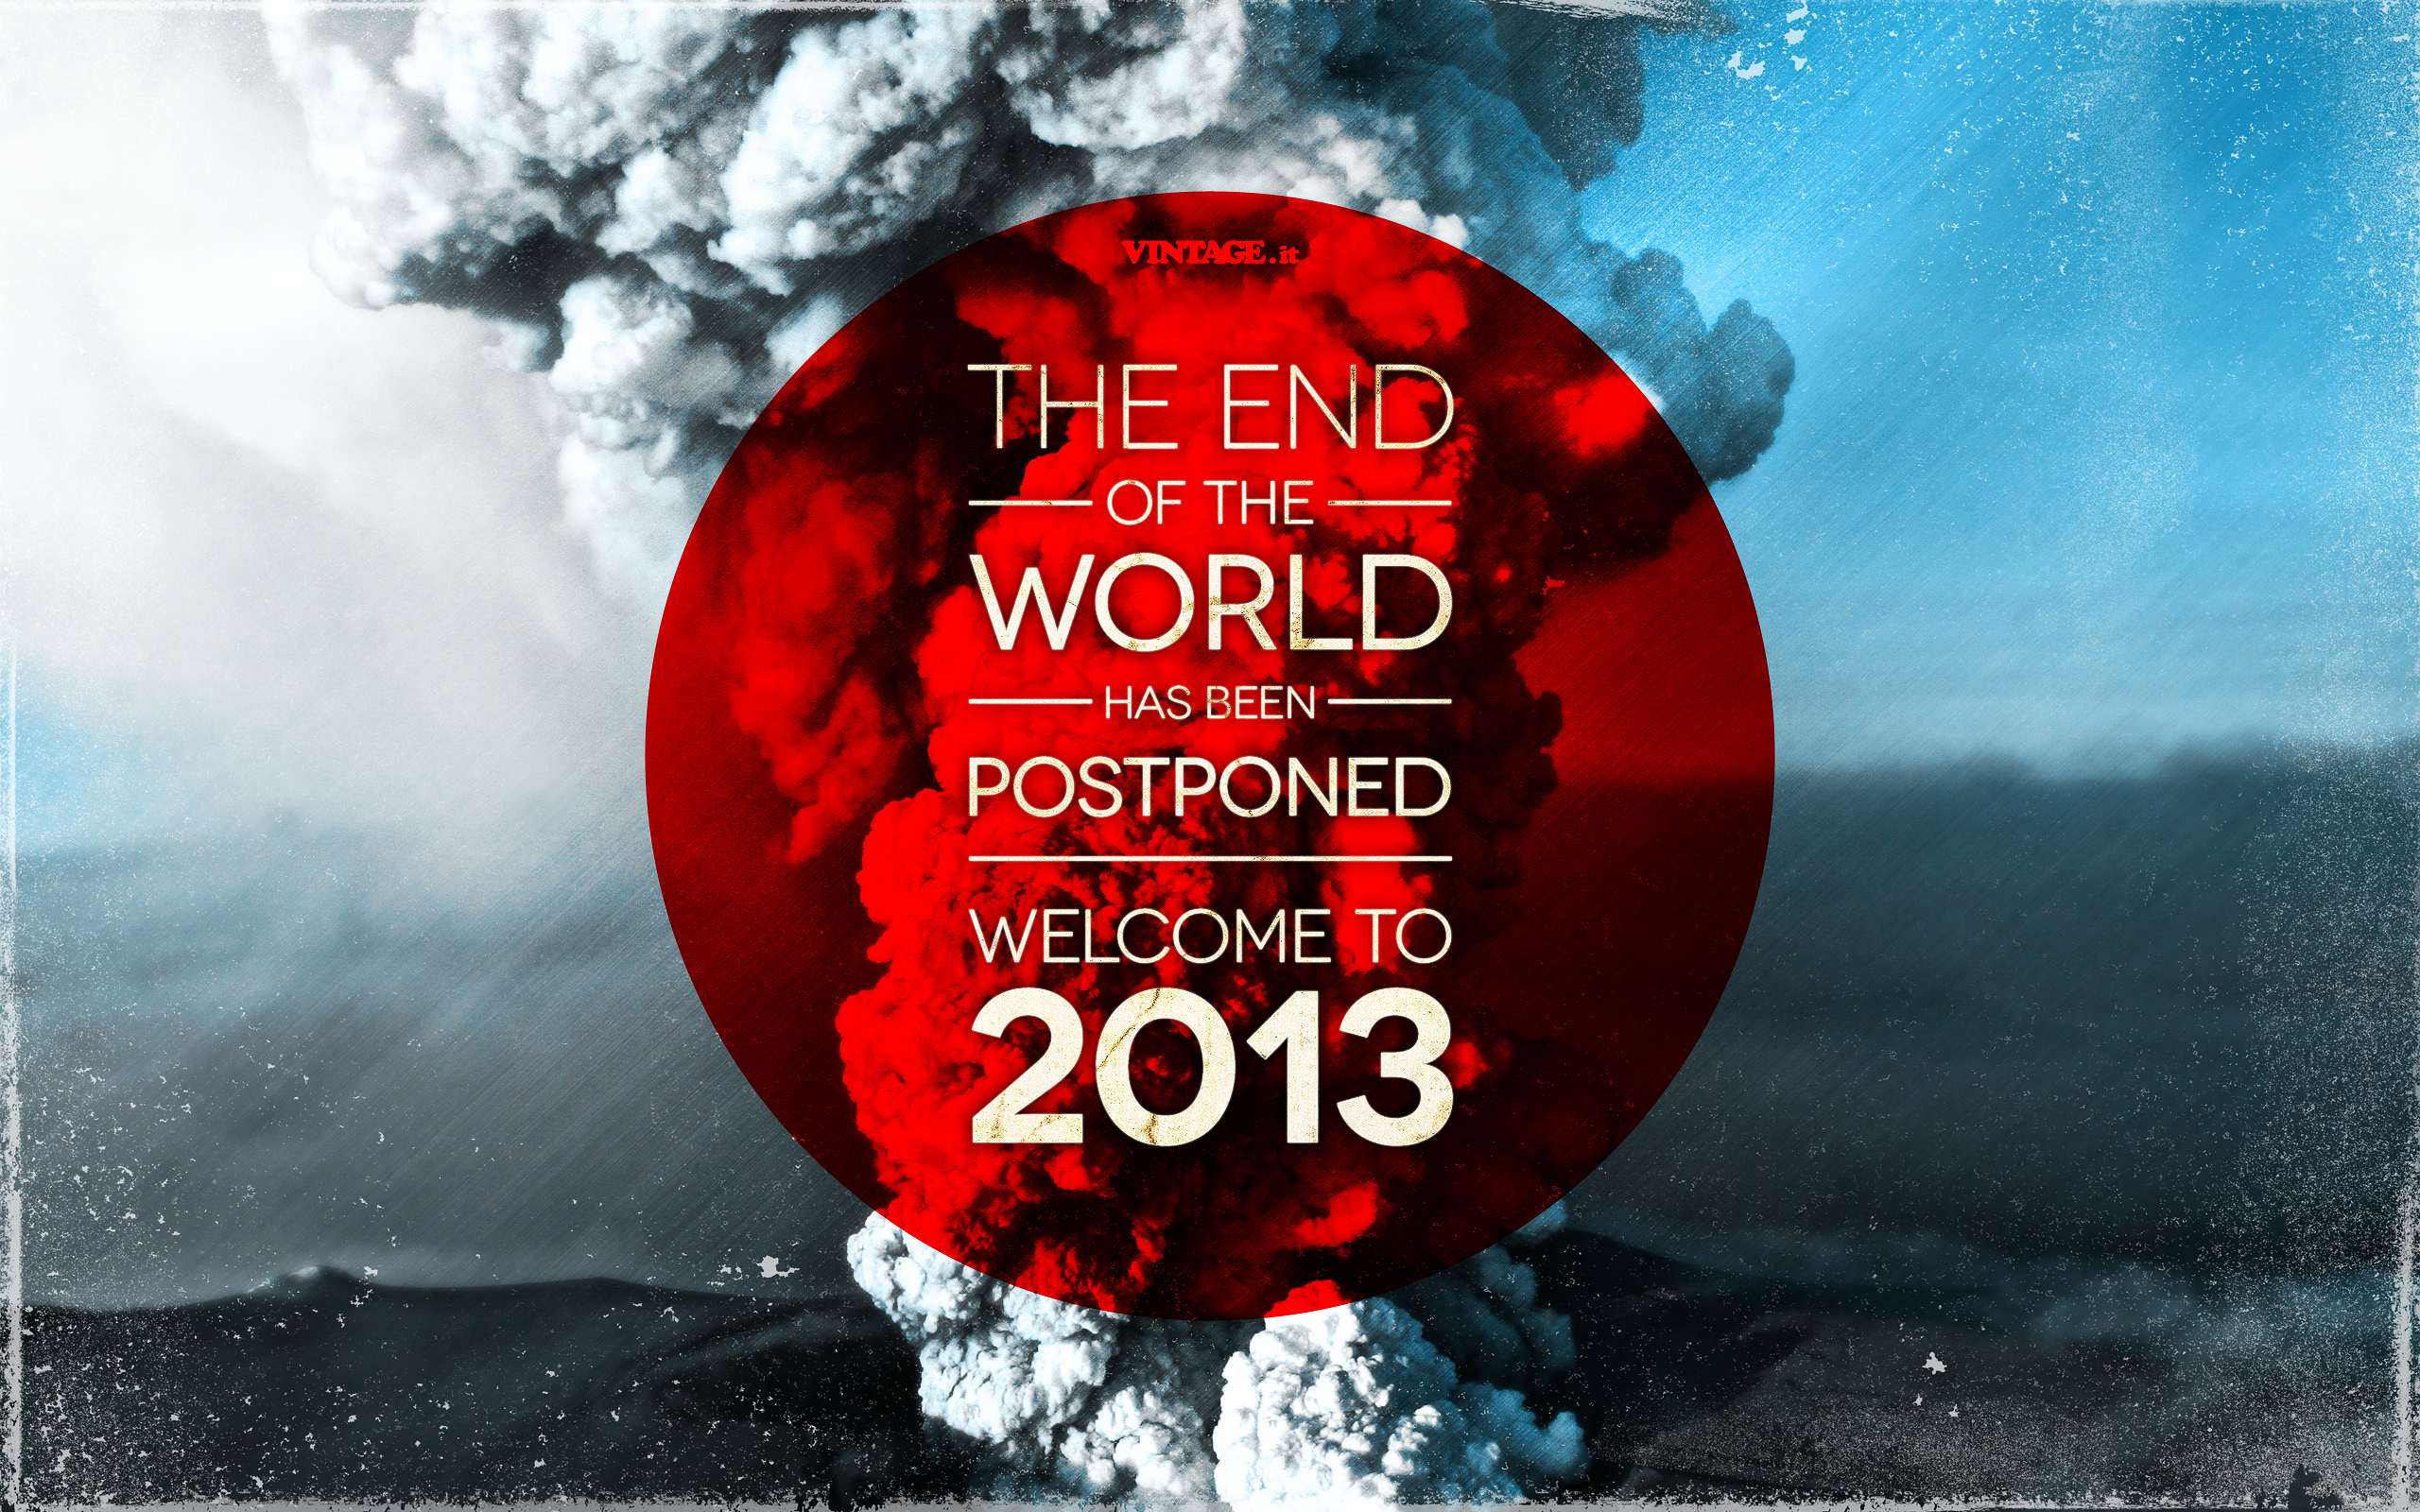 The end of the world wallpaper free desktop hd ipad iphone wallpapers desktop 1610 voltagebd Images